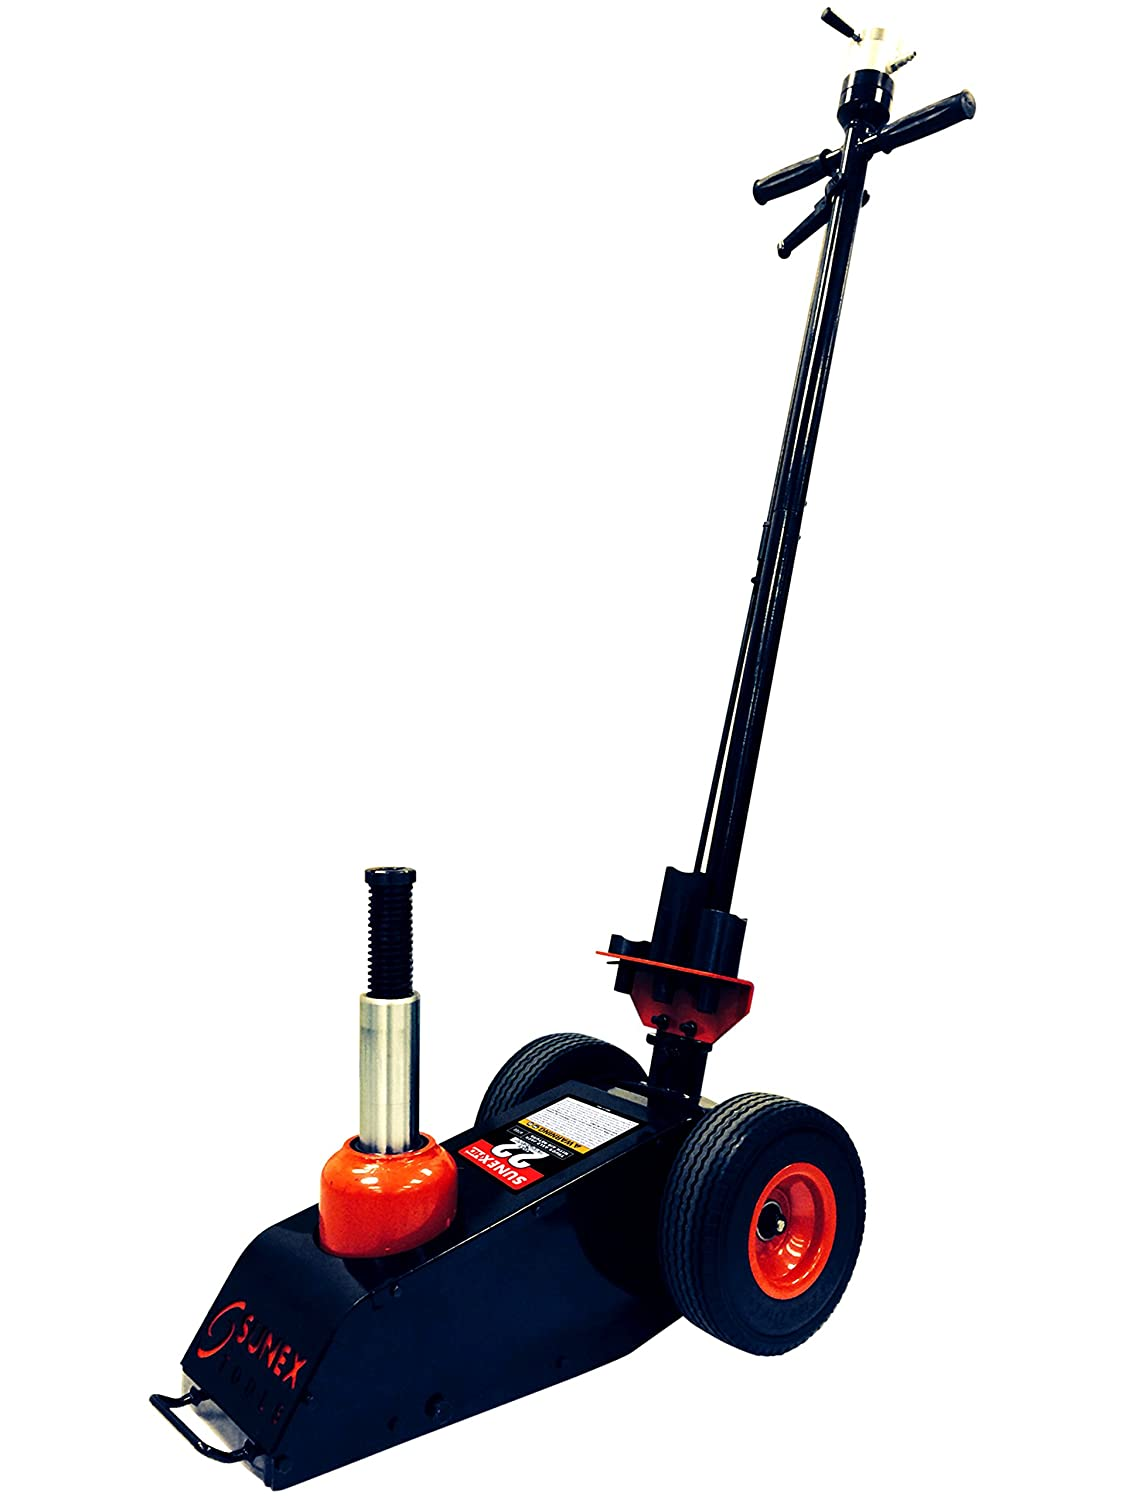 hoists of amazon lift lifts ton heavy amp stands g creeper new and automotive pro with jacks floor vehicle jack idea duty home lovely